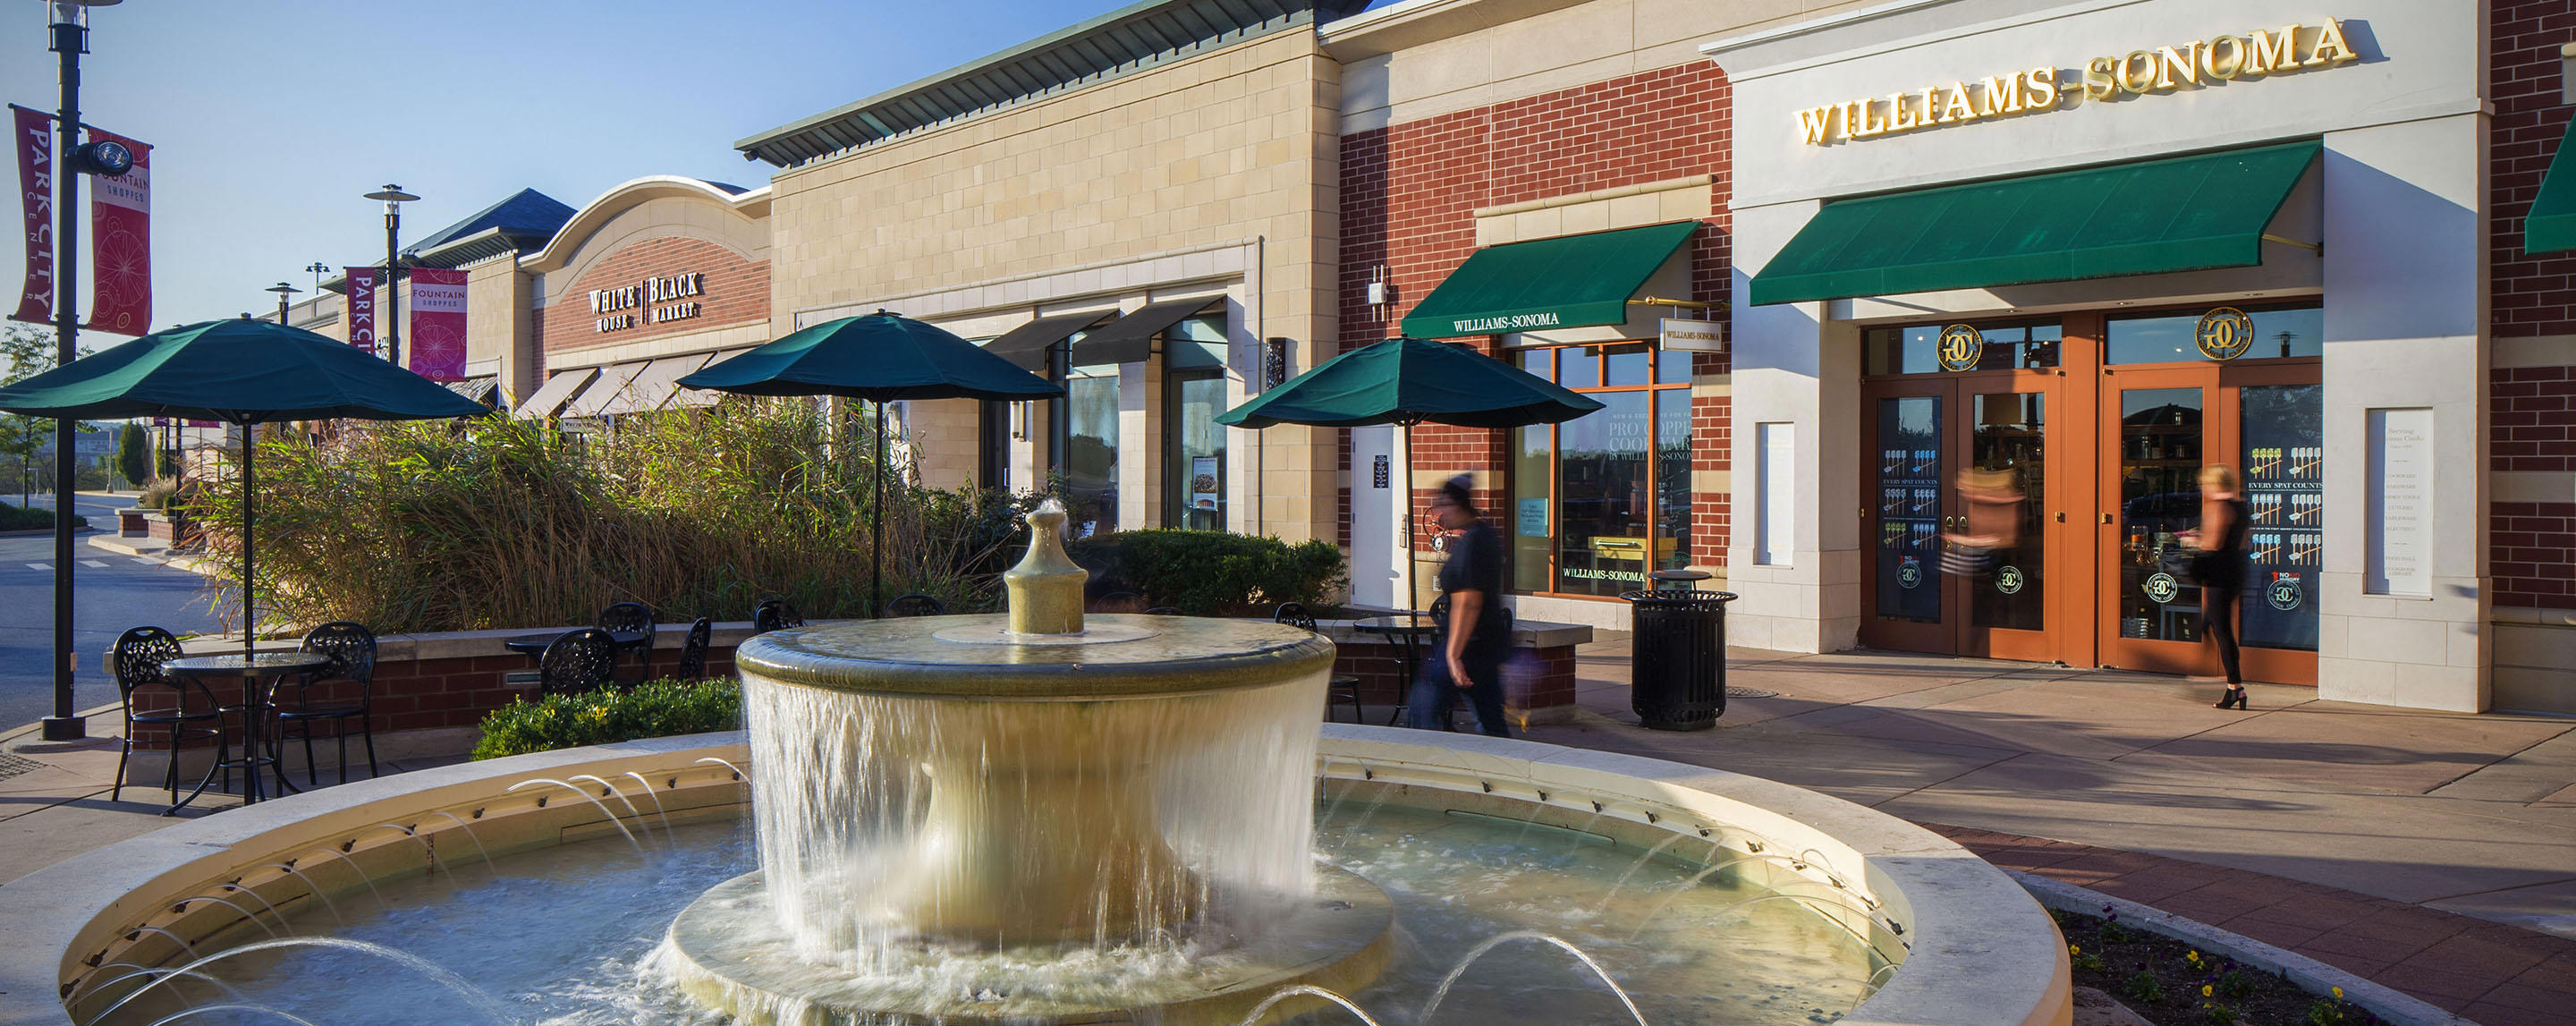 A man walks by a fountain outside of the Williams-Sonoma store in a outdoor shopping center.